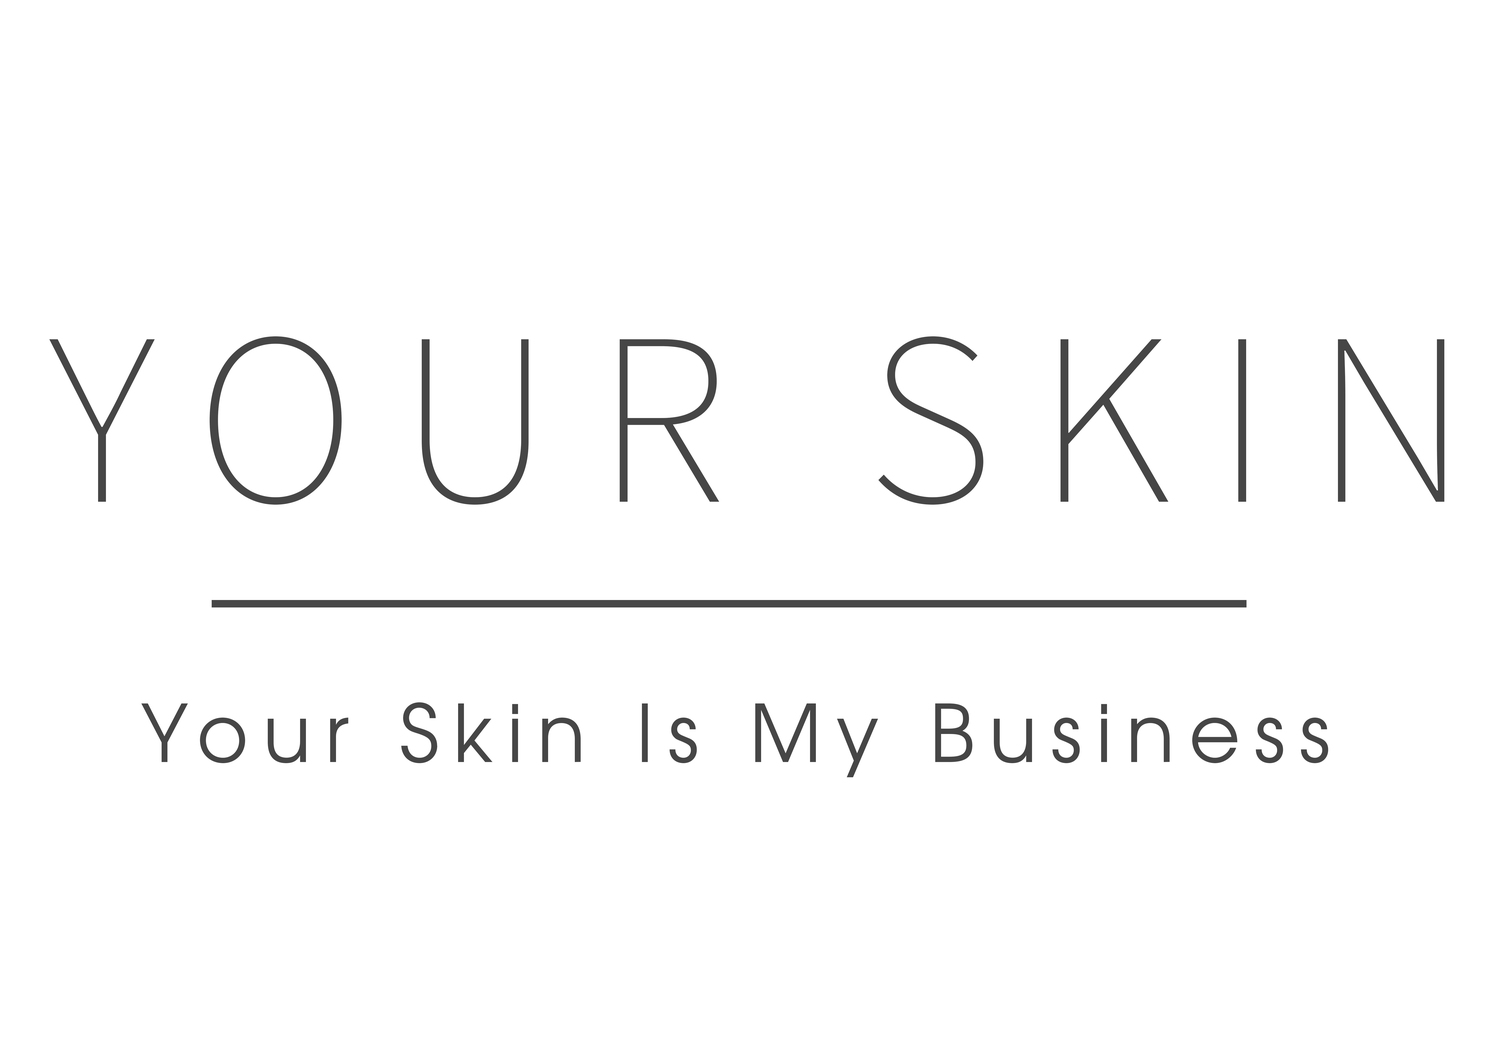 Kosmetik München Solln - Your Skin is my Business